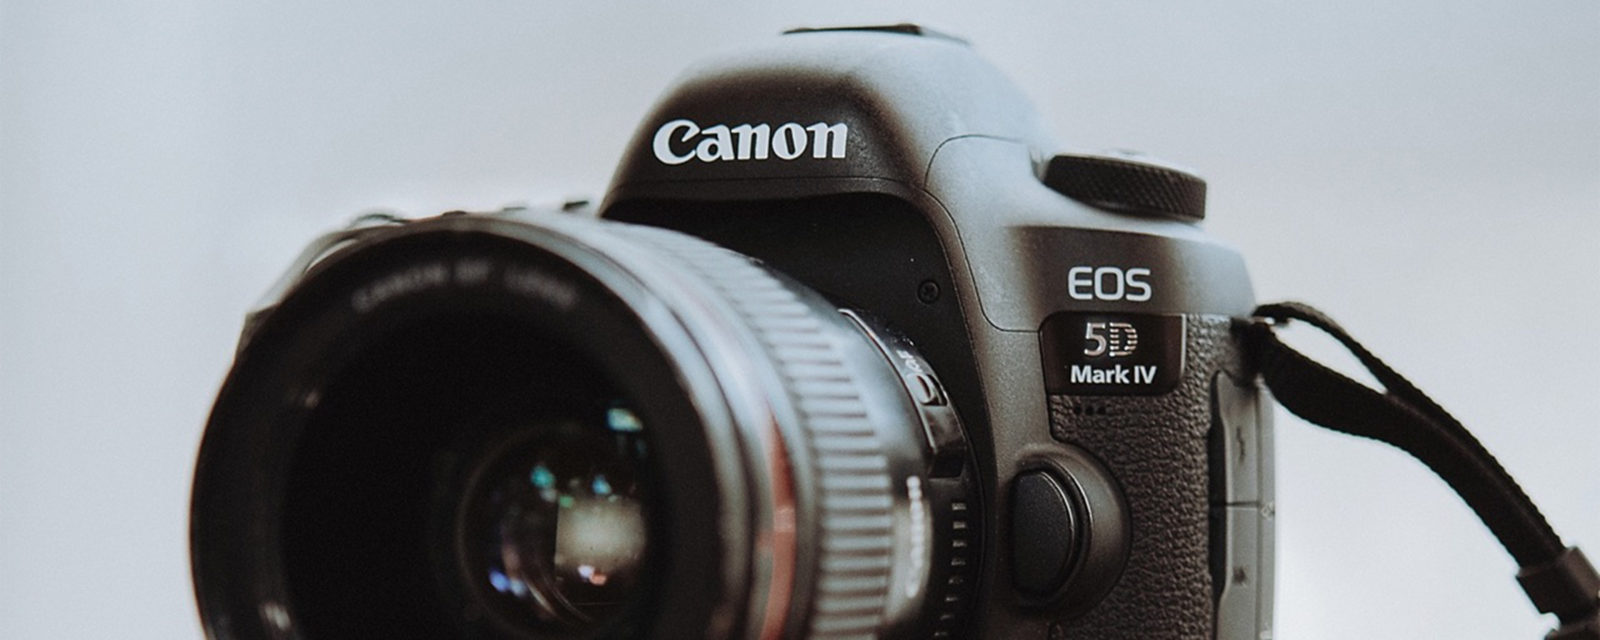 GEAR REVIEW // Canon 5D Mark IV Review